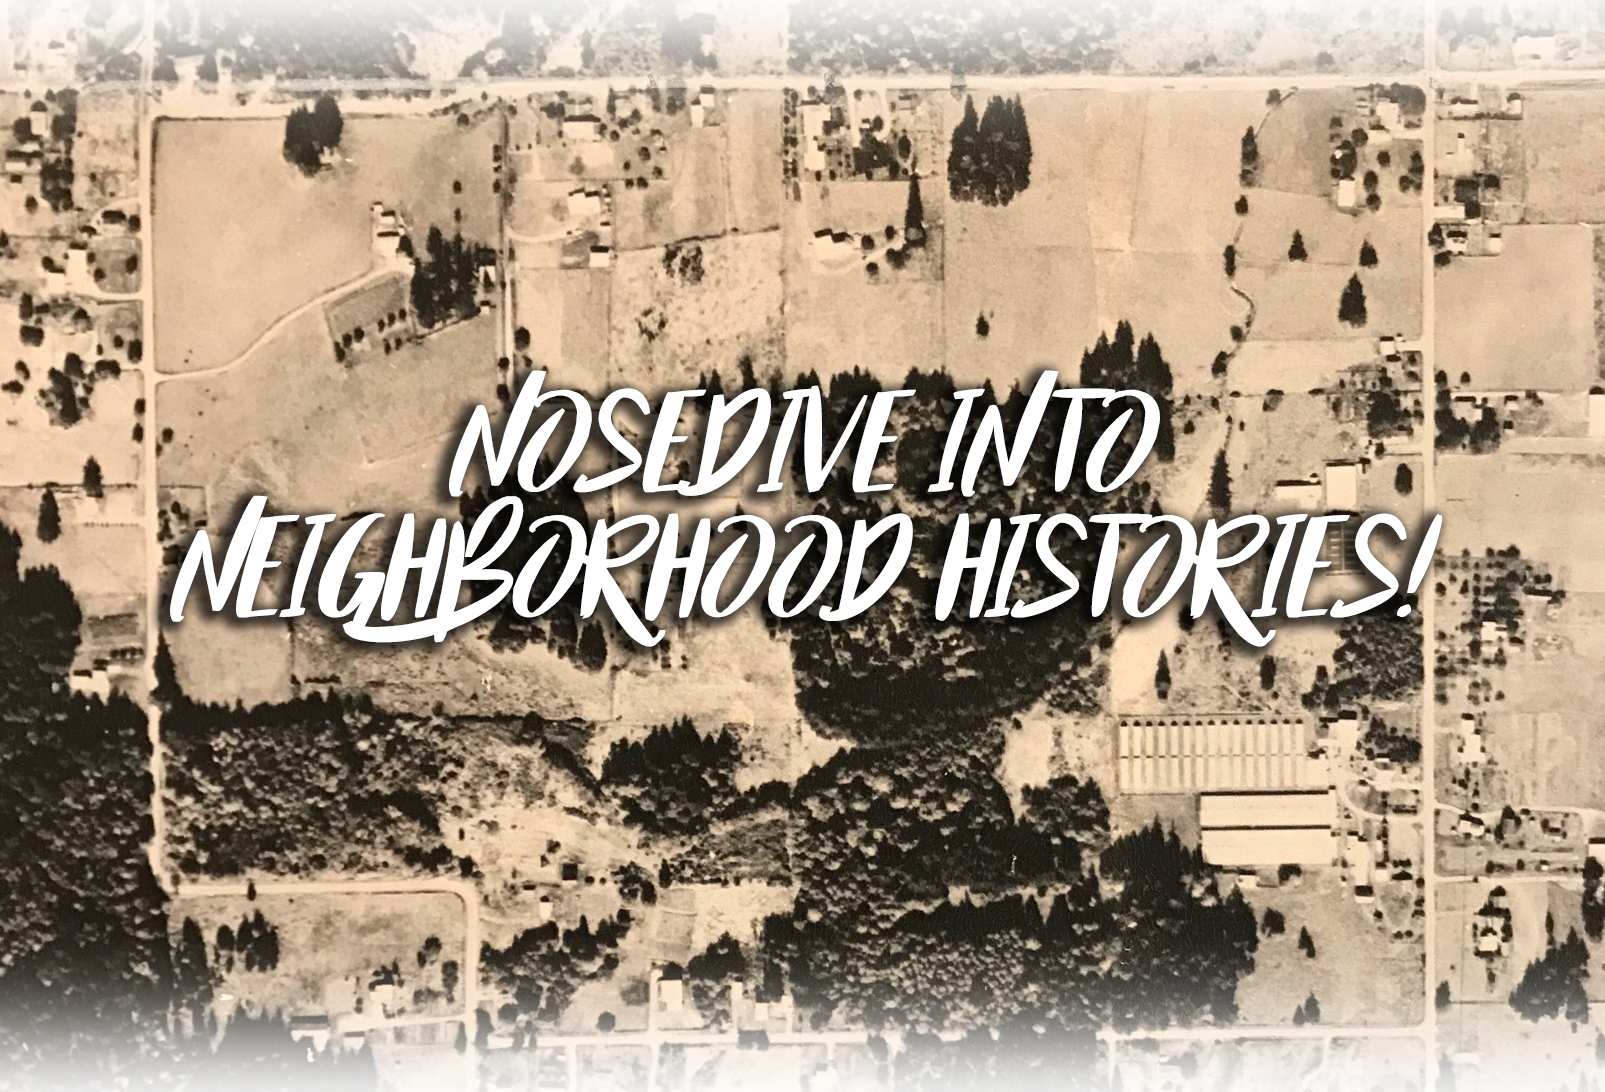 Neighborhood History